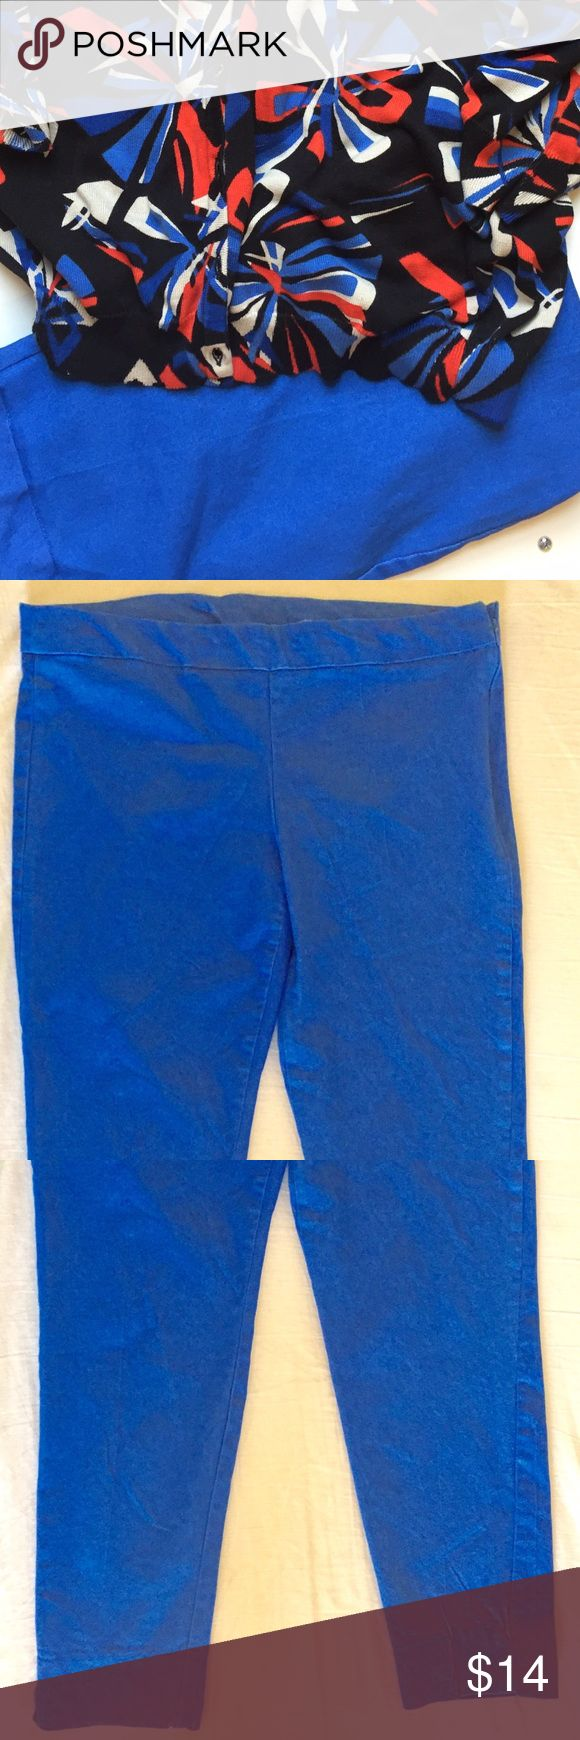 Spandex Bright Blue Jeans Great Looking Spandex Bright Blue Pants Size 10 MY COLLECTION Pants Skinny